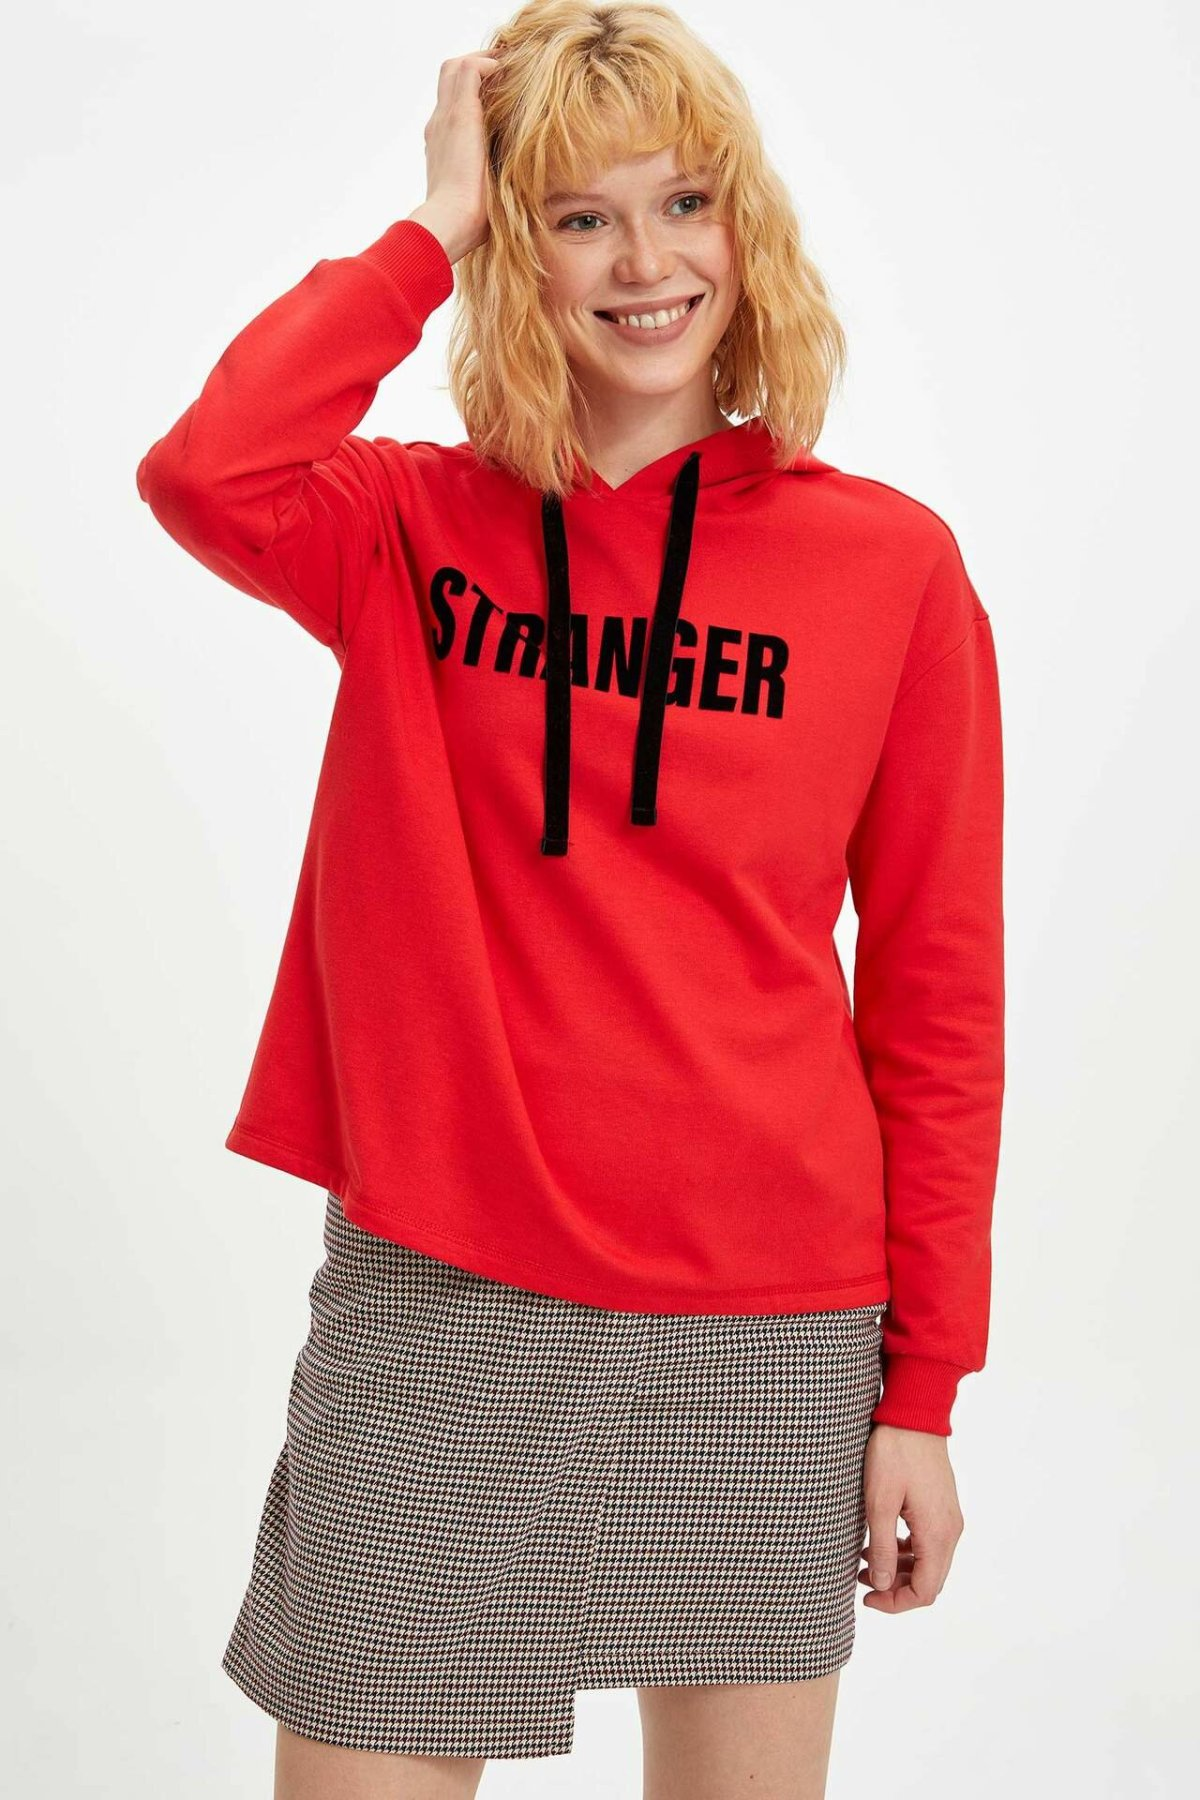 DeFacto Women's Fashion Letter Pattern Hoodies Casual Red Loose Pullovers Sportshirt Autumn Female Tops - M4015AZ19WN